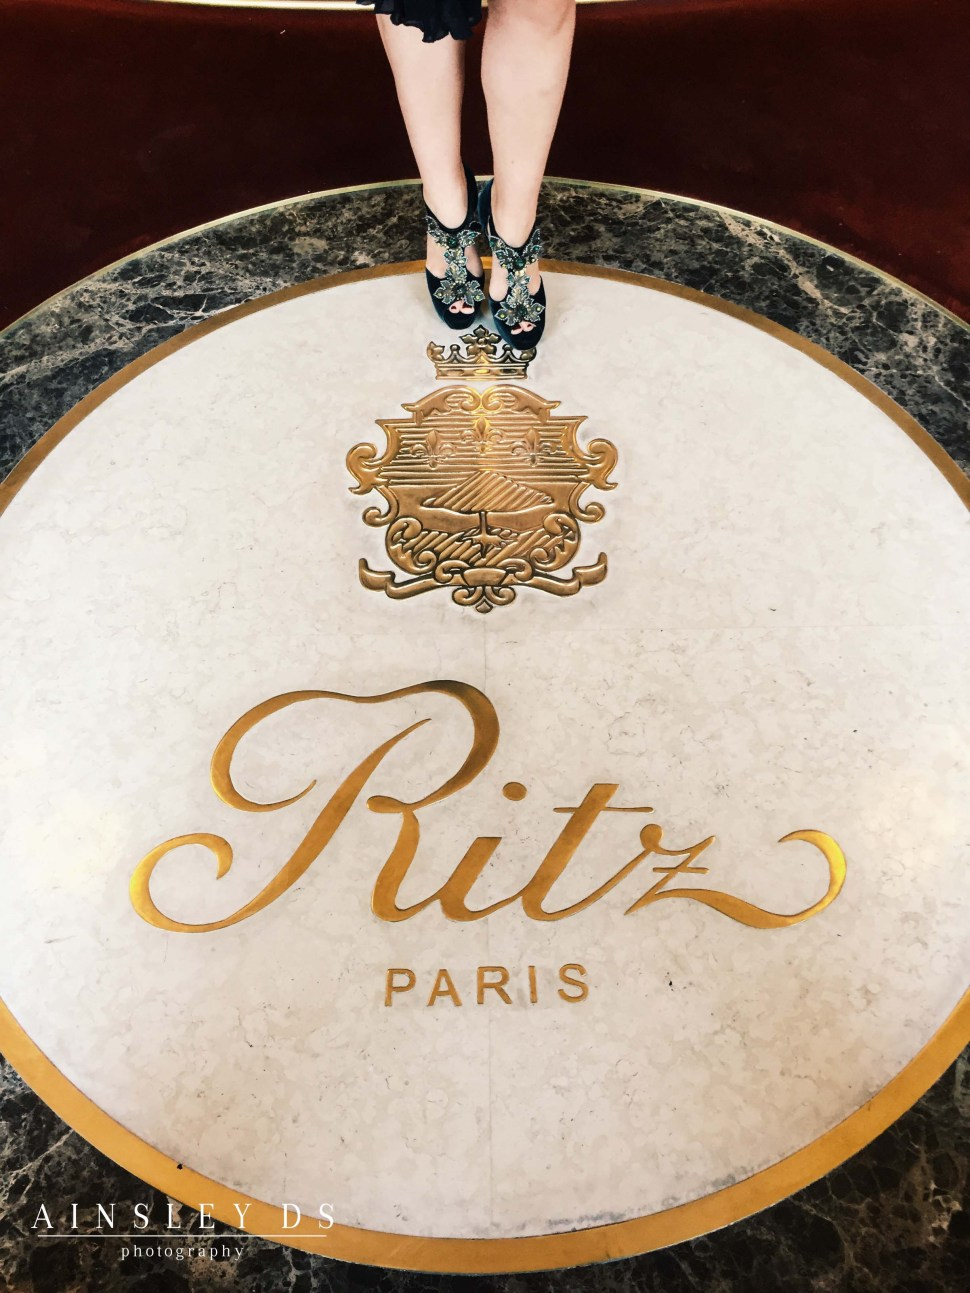 Entrance to the Ritz Paris. Couture shoes by Sidonie Larizzi